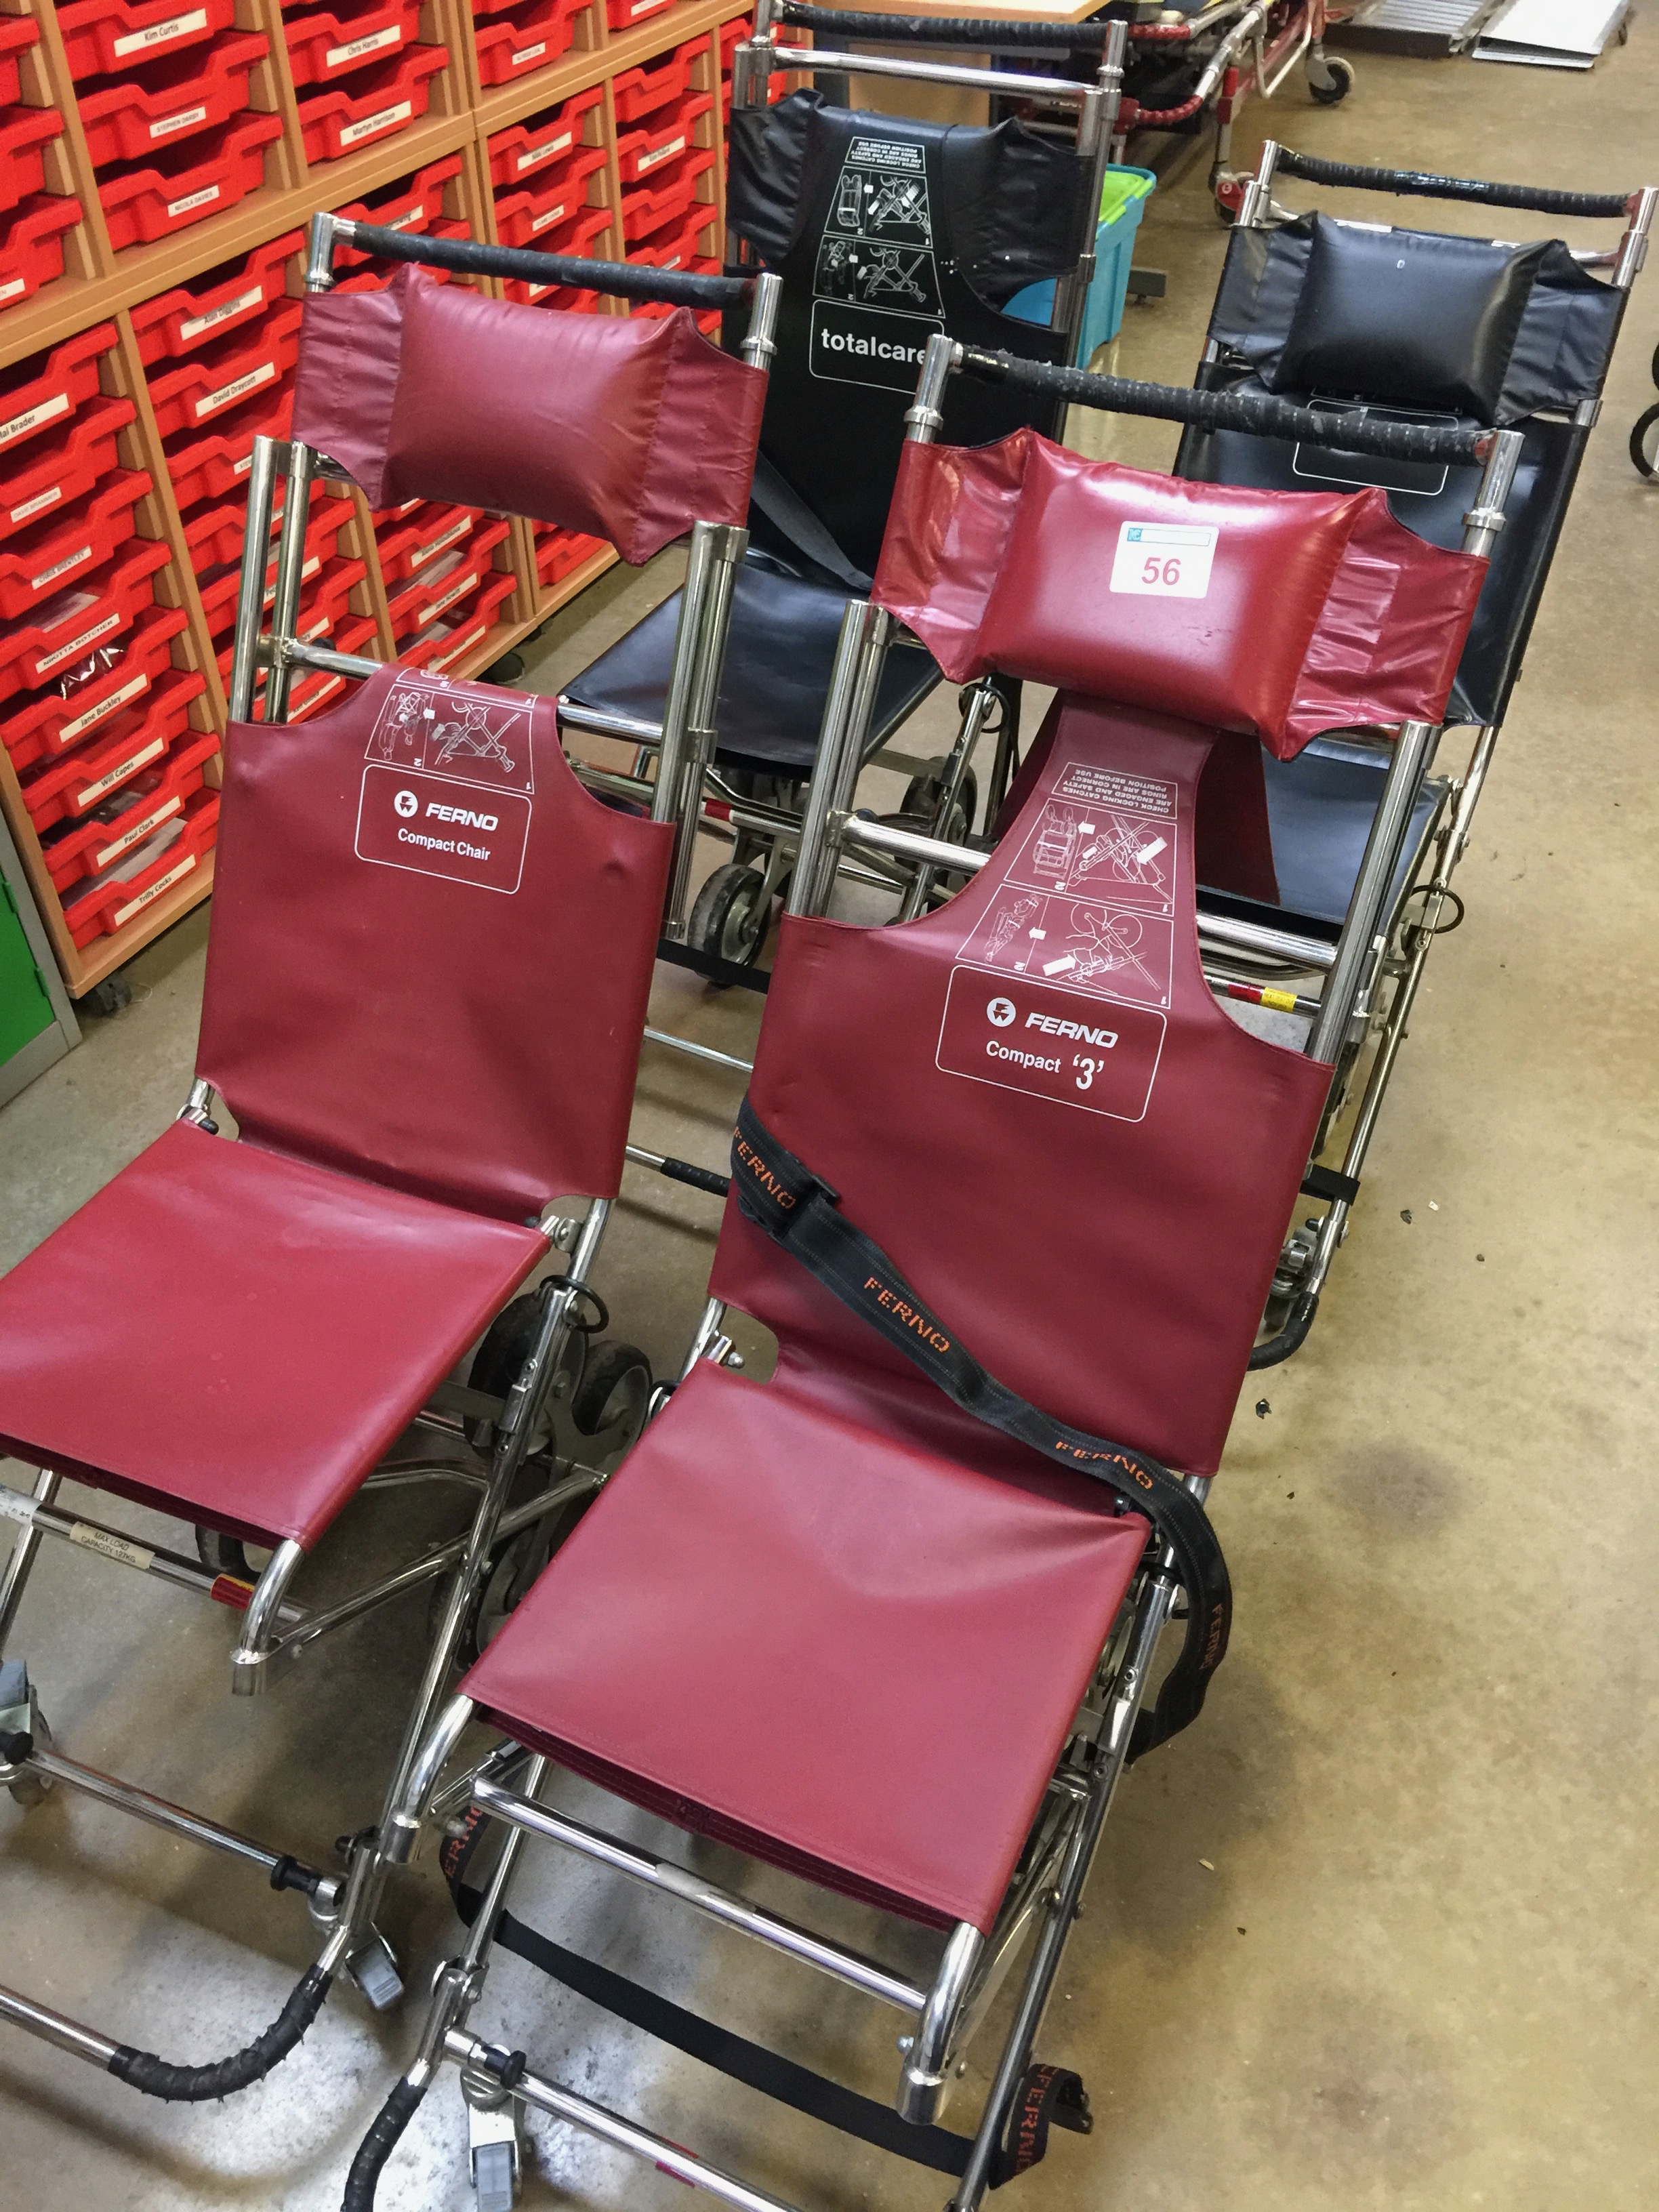 Lot 56 - 2 Ferno Compact  carry chairs and 2 Total-Care carry chairs